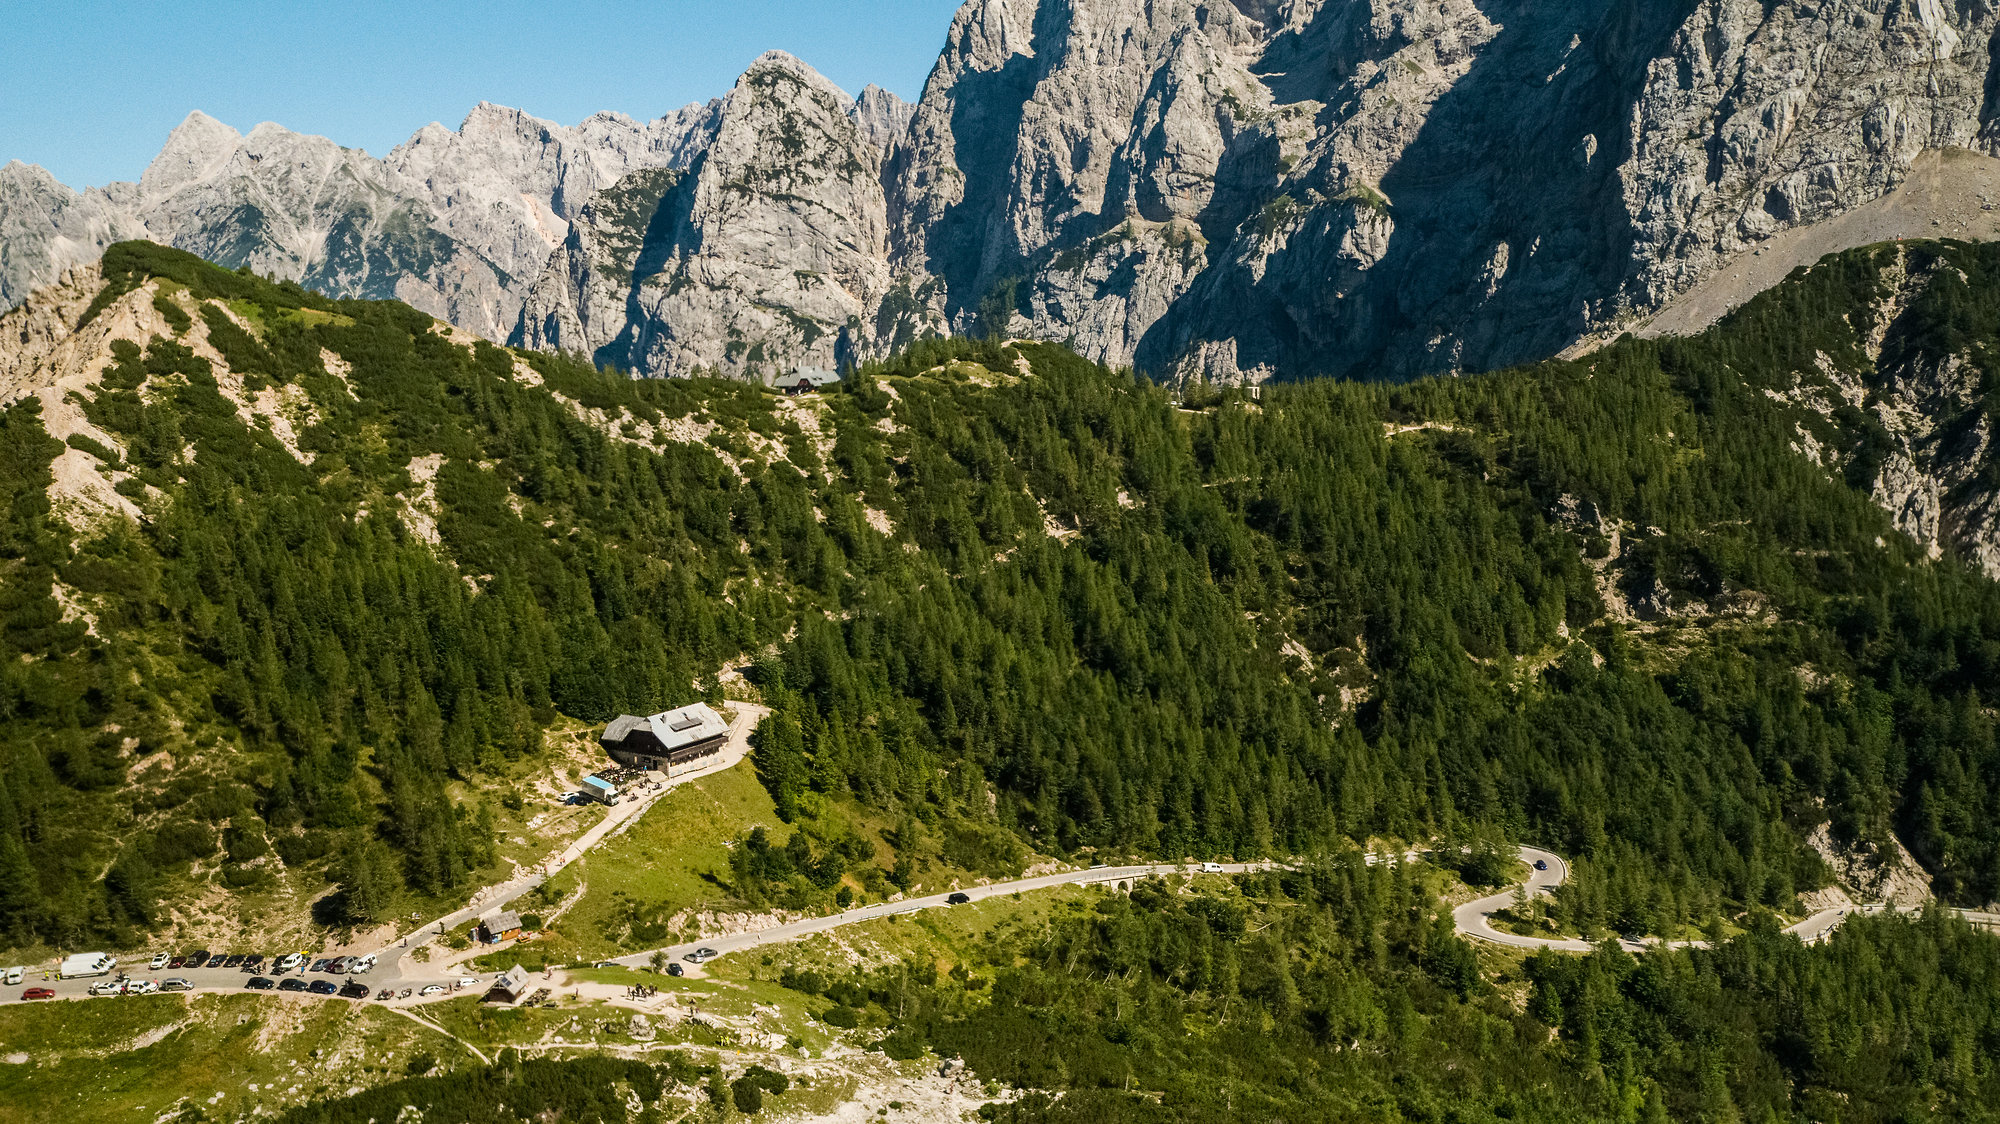 Visit And Explore Vrsic, The Highest Mountain Pass In Slovenia